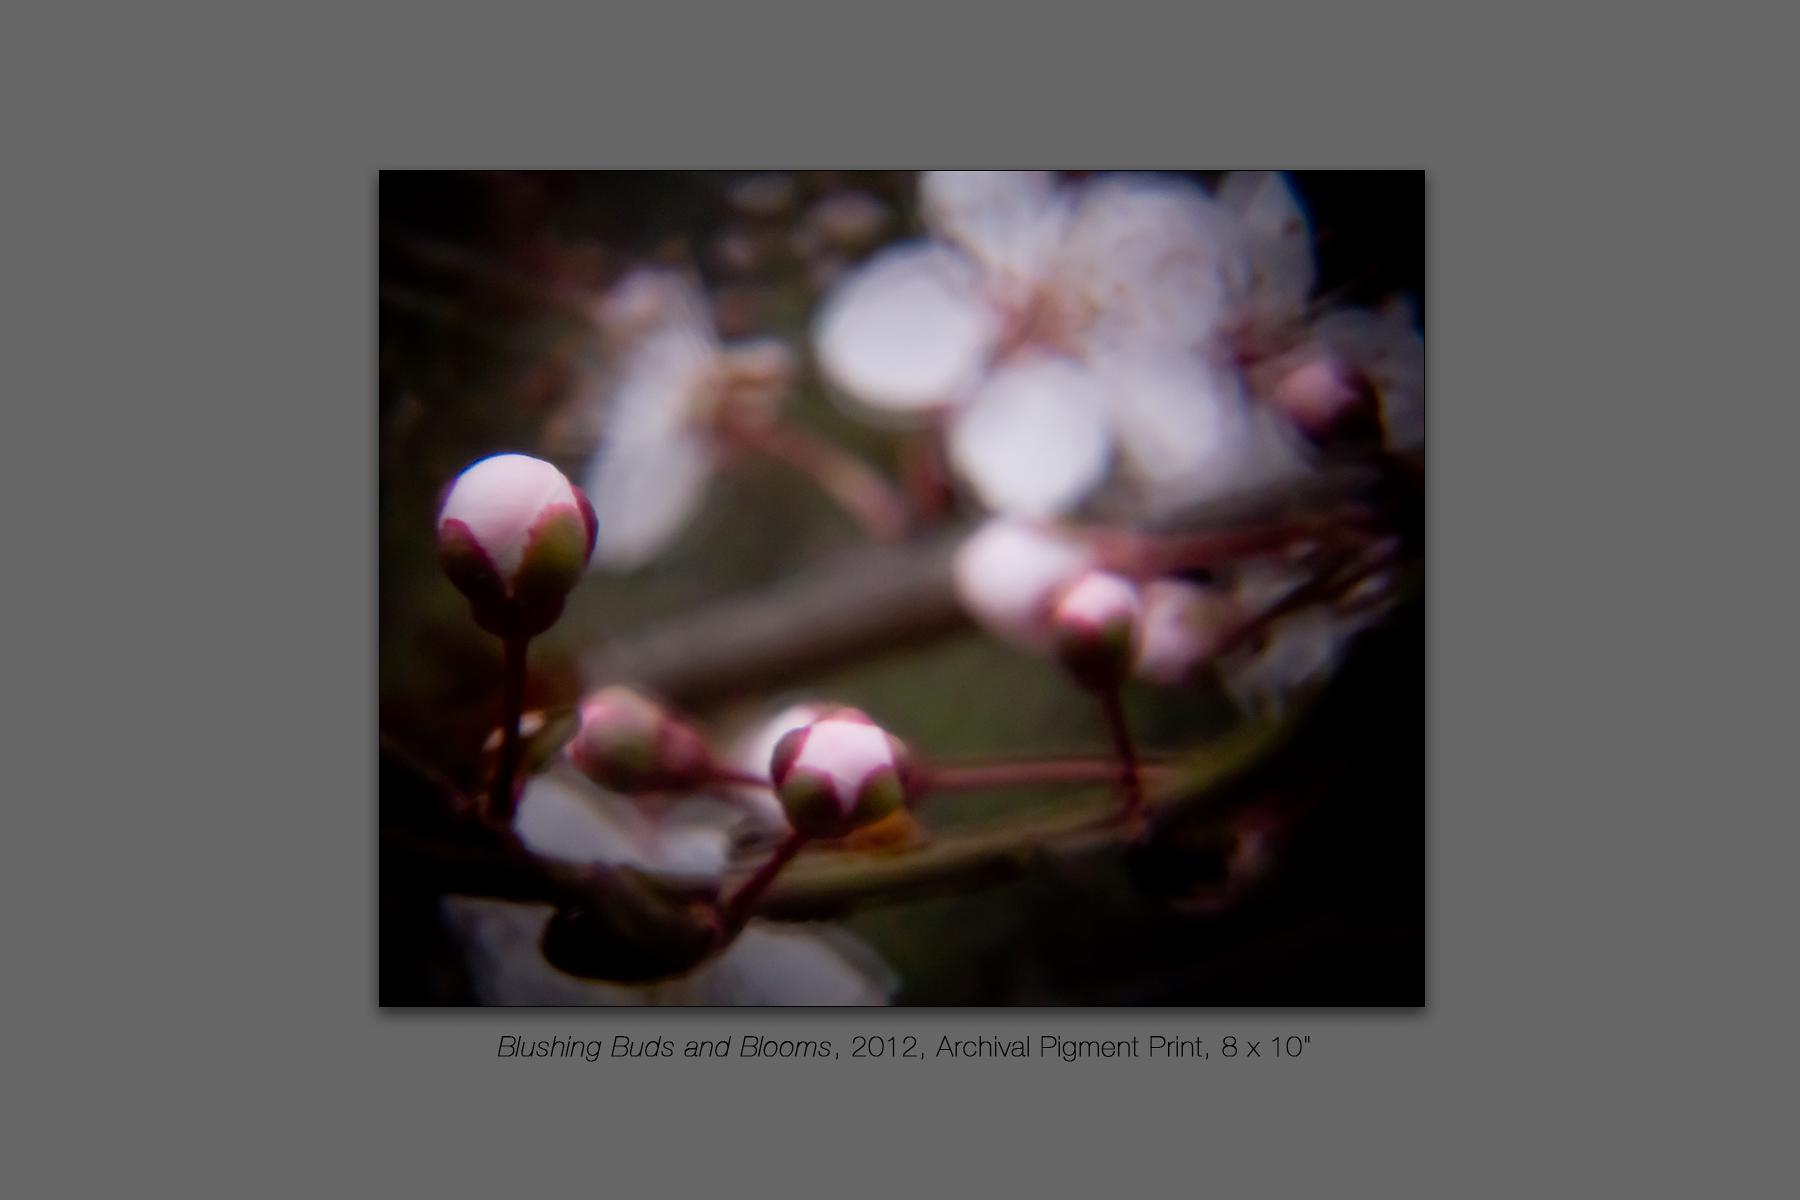 Blushing Buds and Blooms, 2012